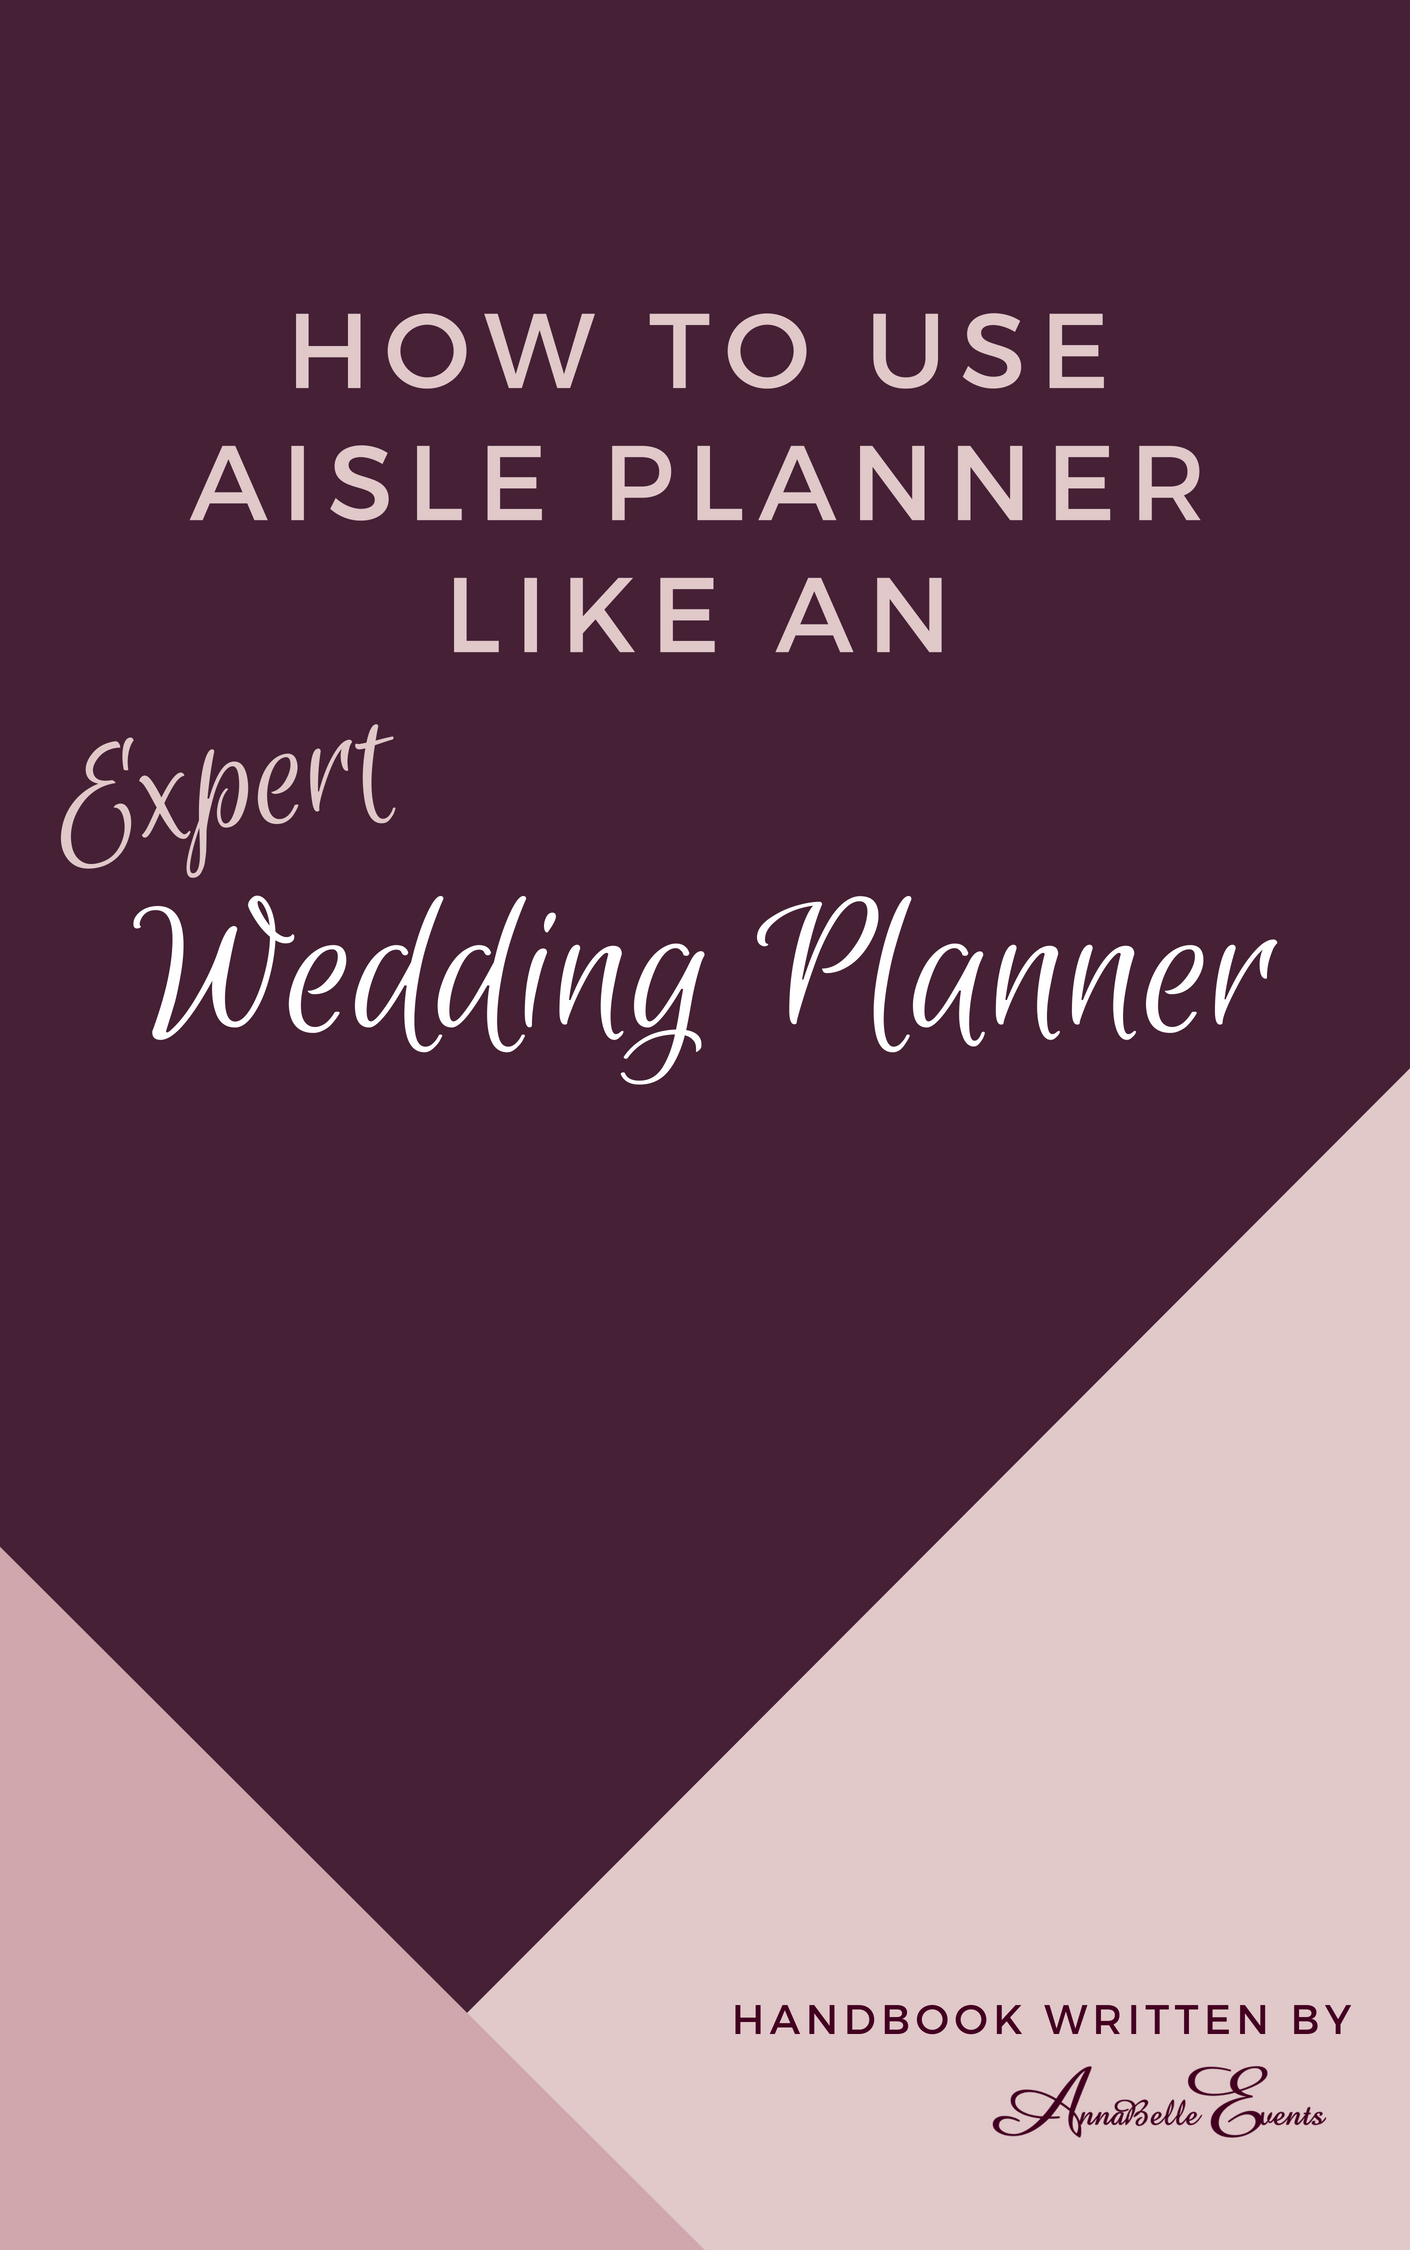 How To Use Aisle Planner Like A Pro_ EBook.jpg